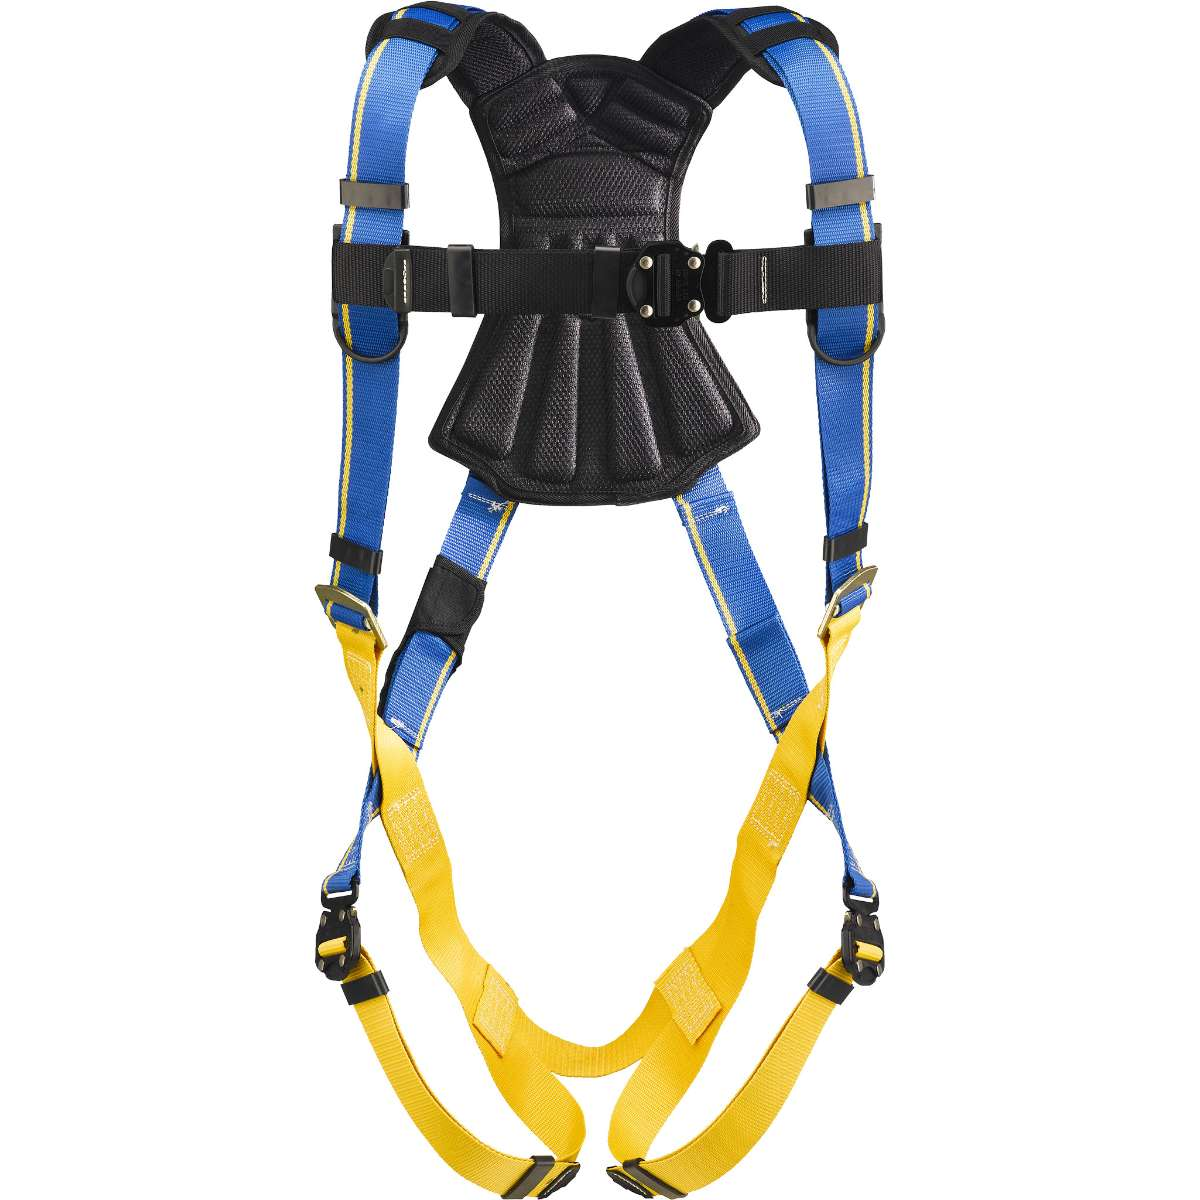 Werner Standard Harness - Quick Connect Legs